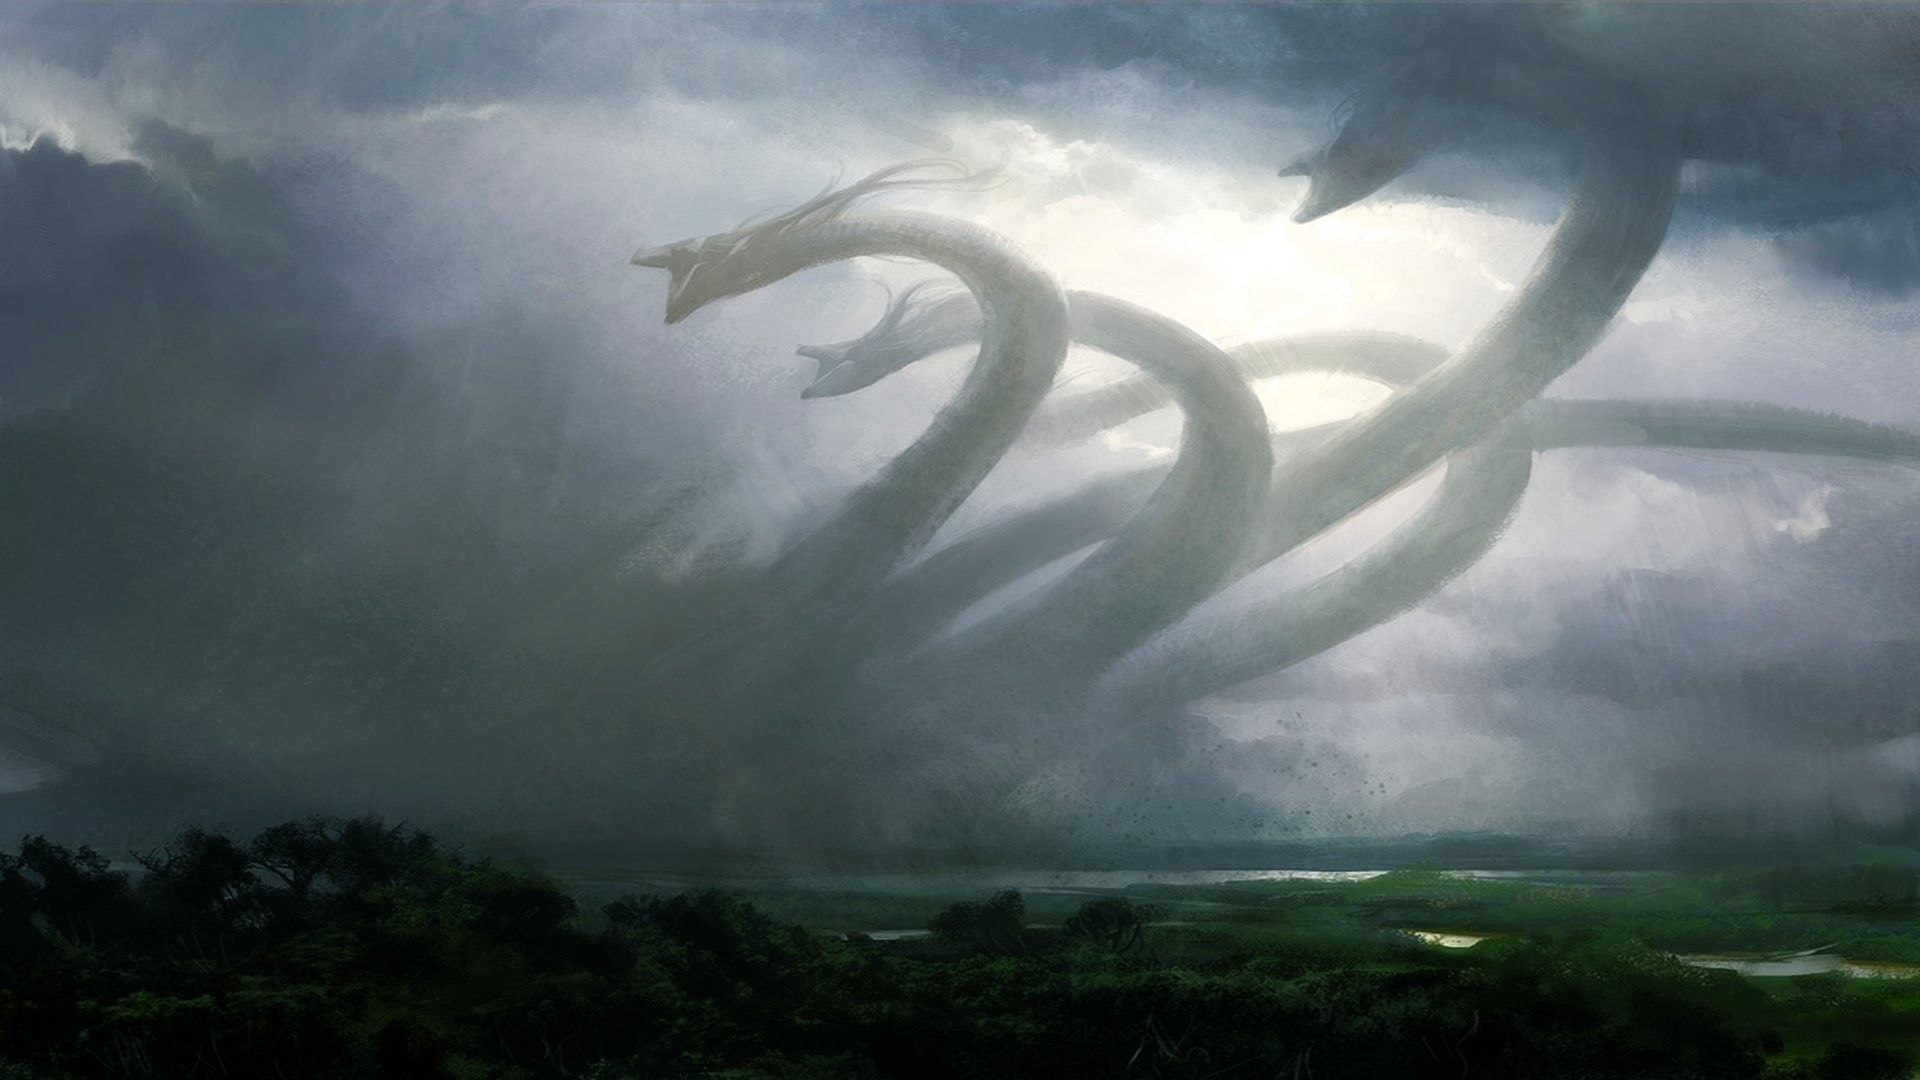 Magic The Gathering Hd Wallpapers Backgrounds 1920 1080 Magic The